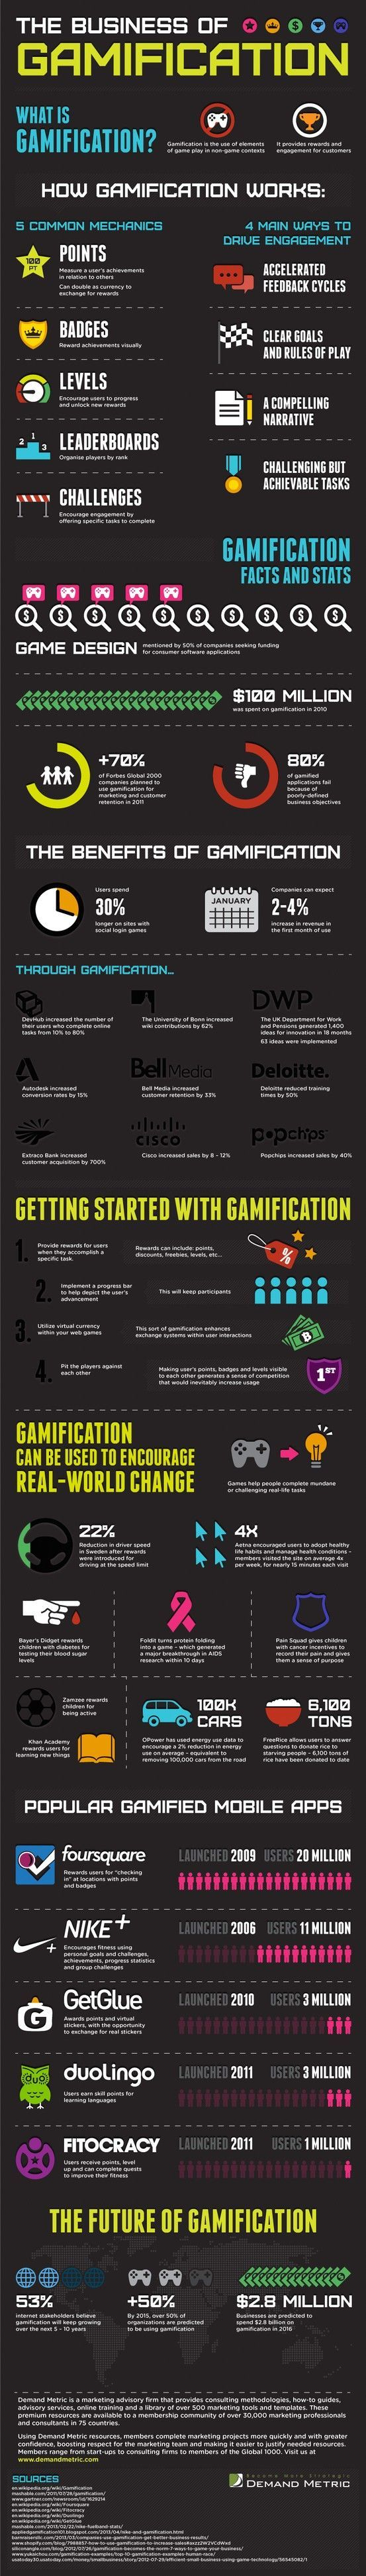 Using Gamification to Engage Your Audience [INFOGRAPHIC]